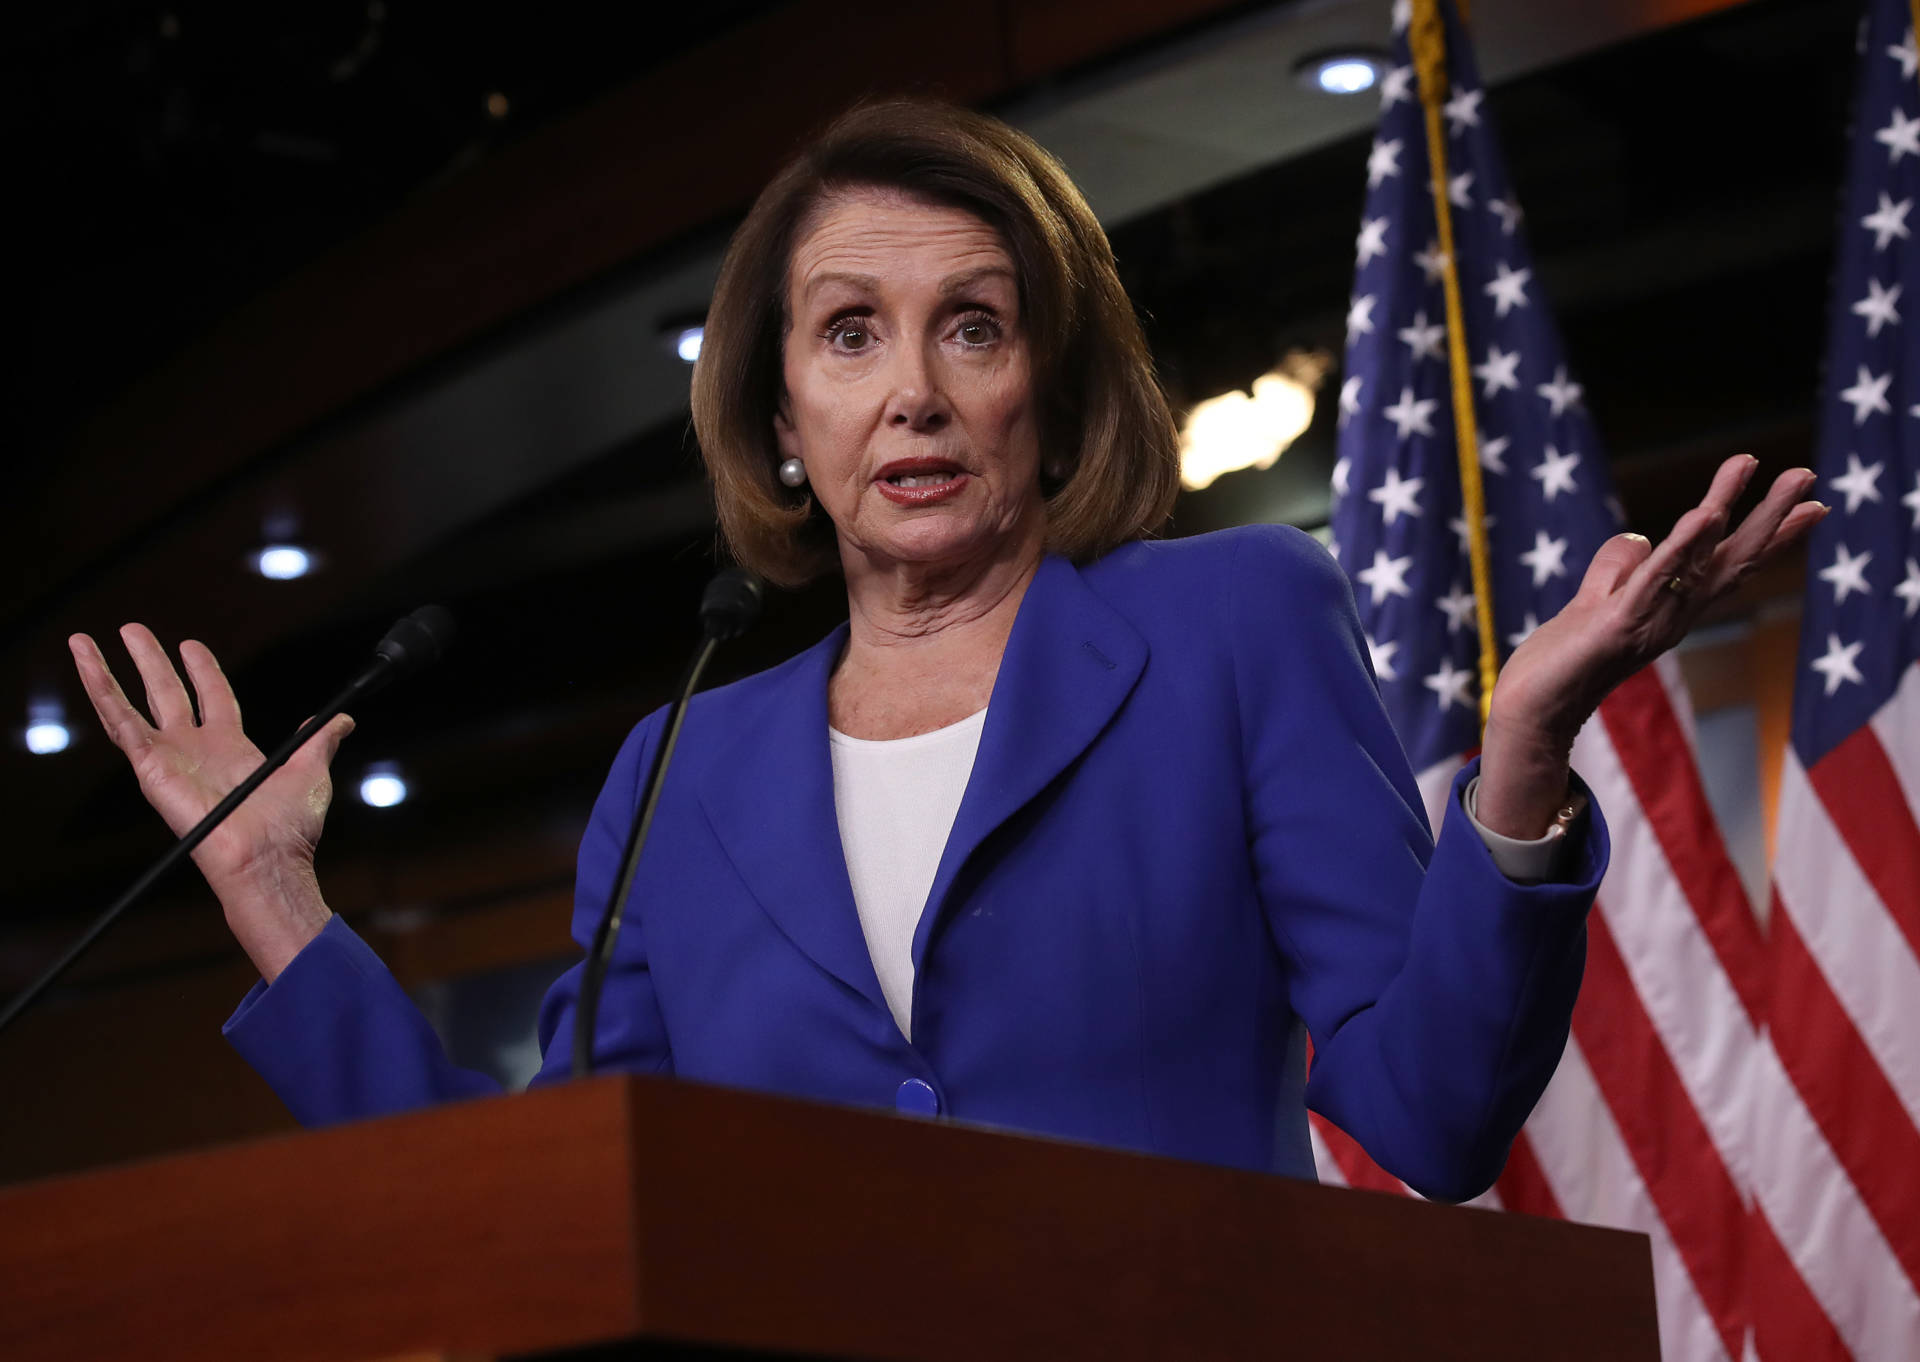 U.S. Speaker of the House Nancy Pelosi answers questions during her weekly press conference on Jan. 31, 2019, in Washington, D.C.  Win McNamee/Getty Images